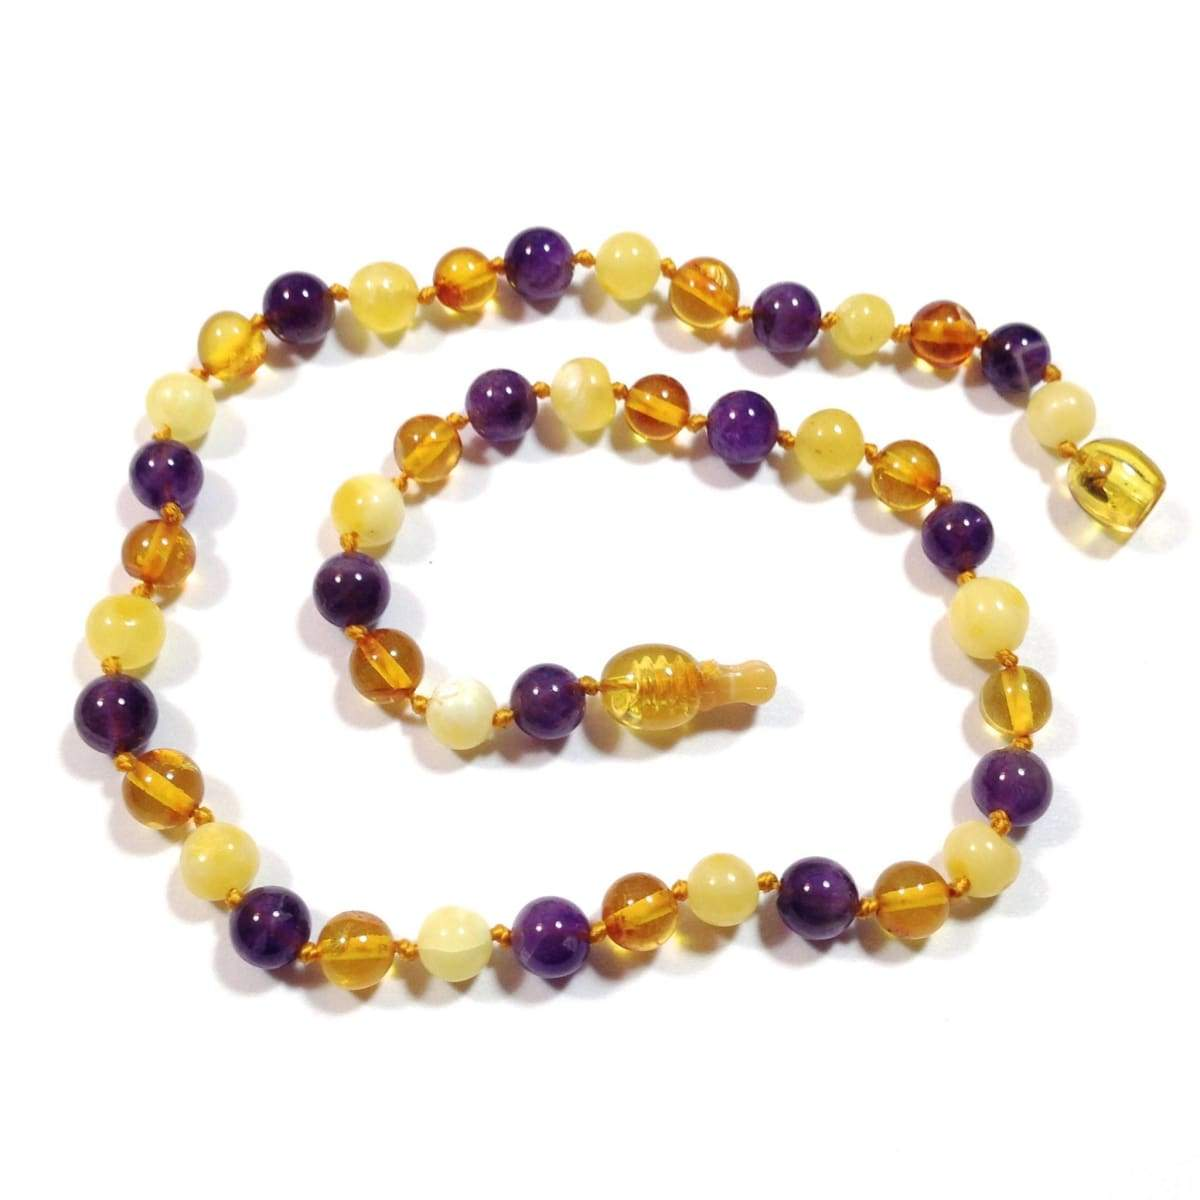 Amber-Gemstone Honey Butter & Amethyst - 12 Necklace - Pop Clasp - Baltic Amber & Gemstone Jewelry